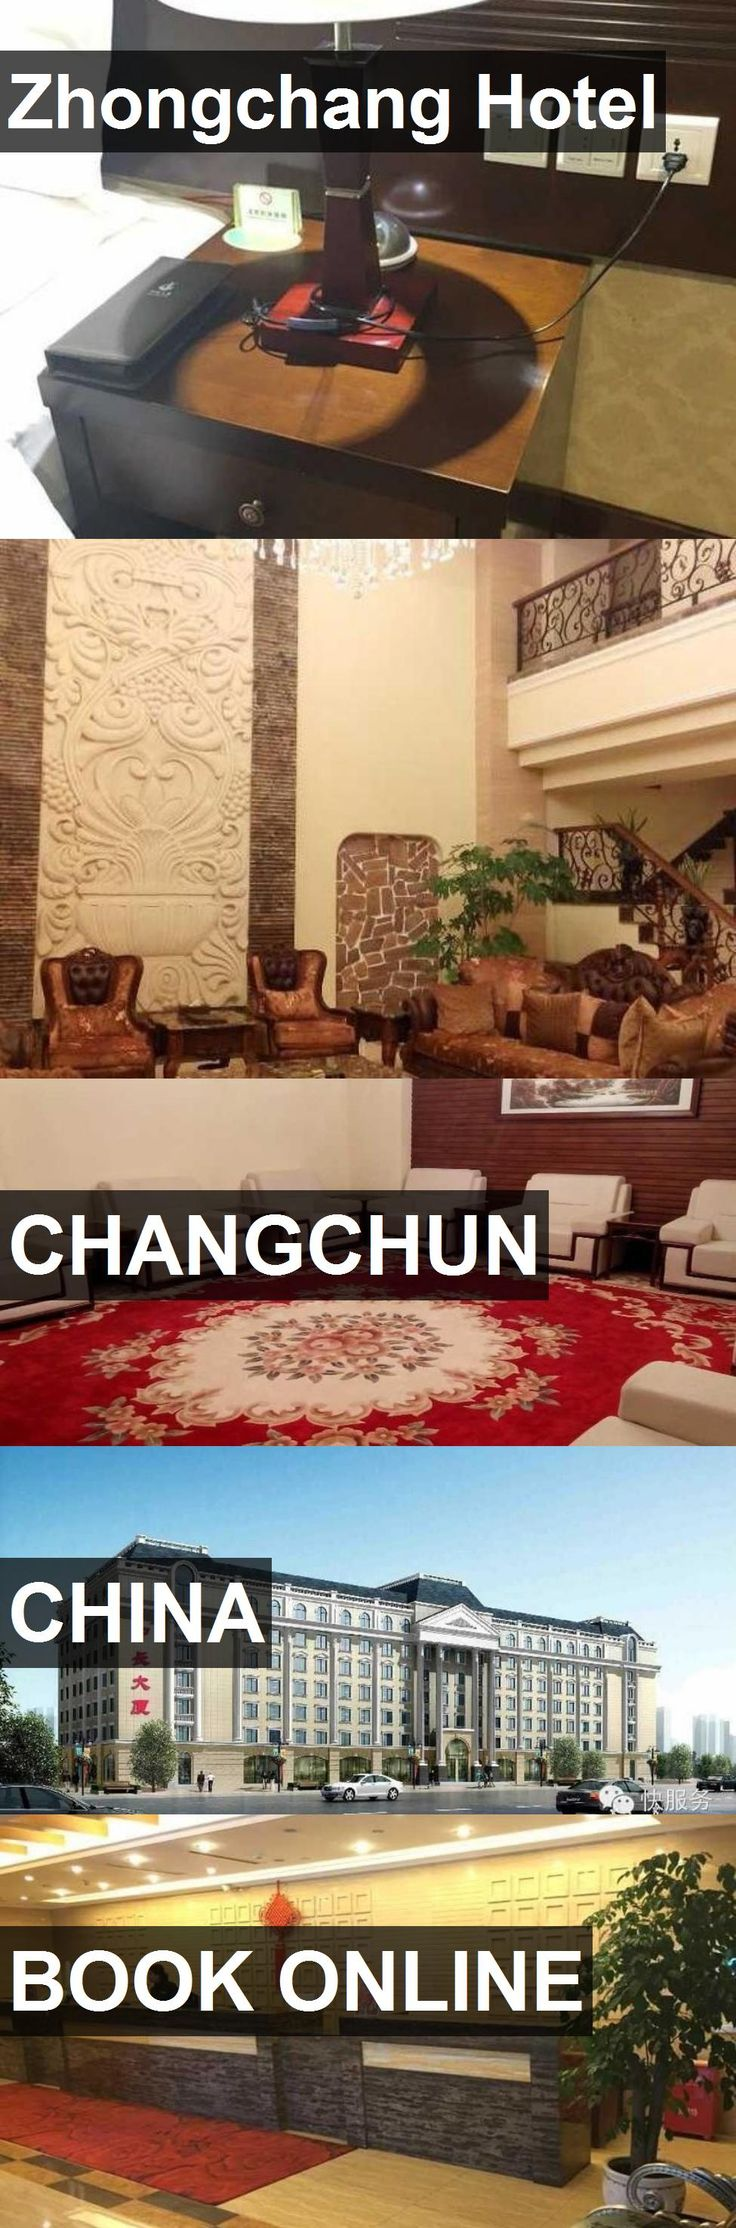 Zhongchang Hotel in Changchun, China. For more information, photos, reviews and best prices please follow the link. #China #Changchun #travel #vacation #hotel